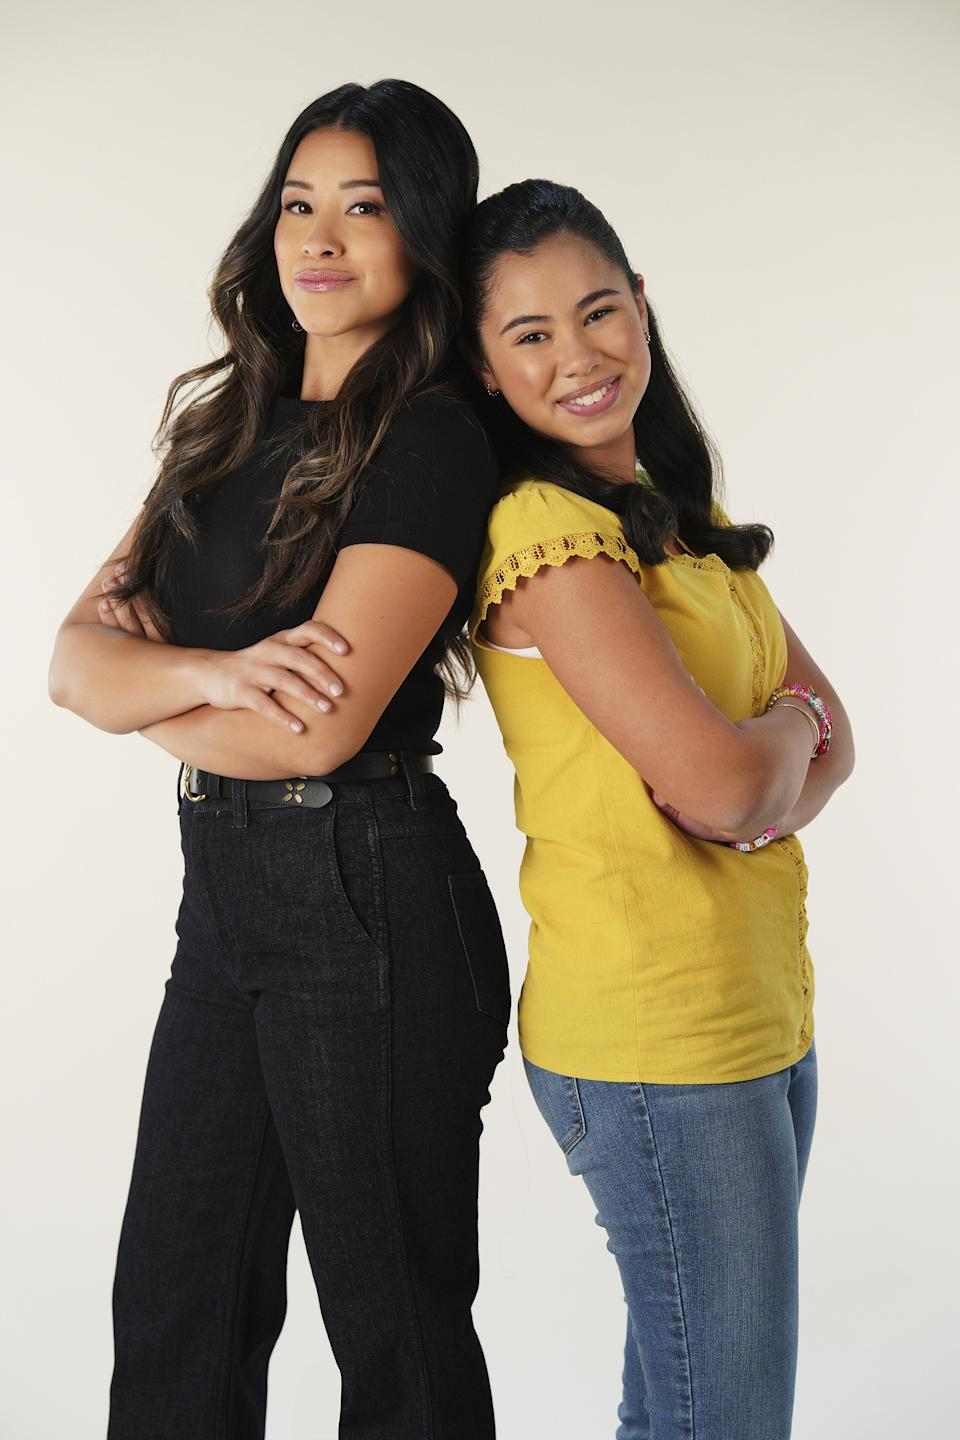 Gina Rodriguez, left, stars as future Elena, while Tess Romero is young Elena Cañero-Reed in Diary of a Future President. (Credit: Disney/Christopher Willard)